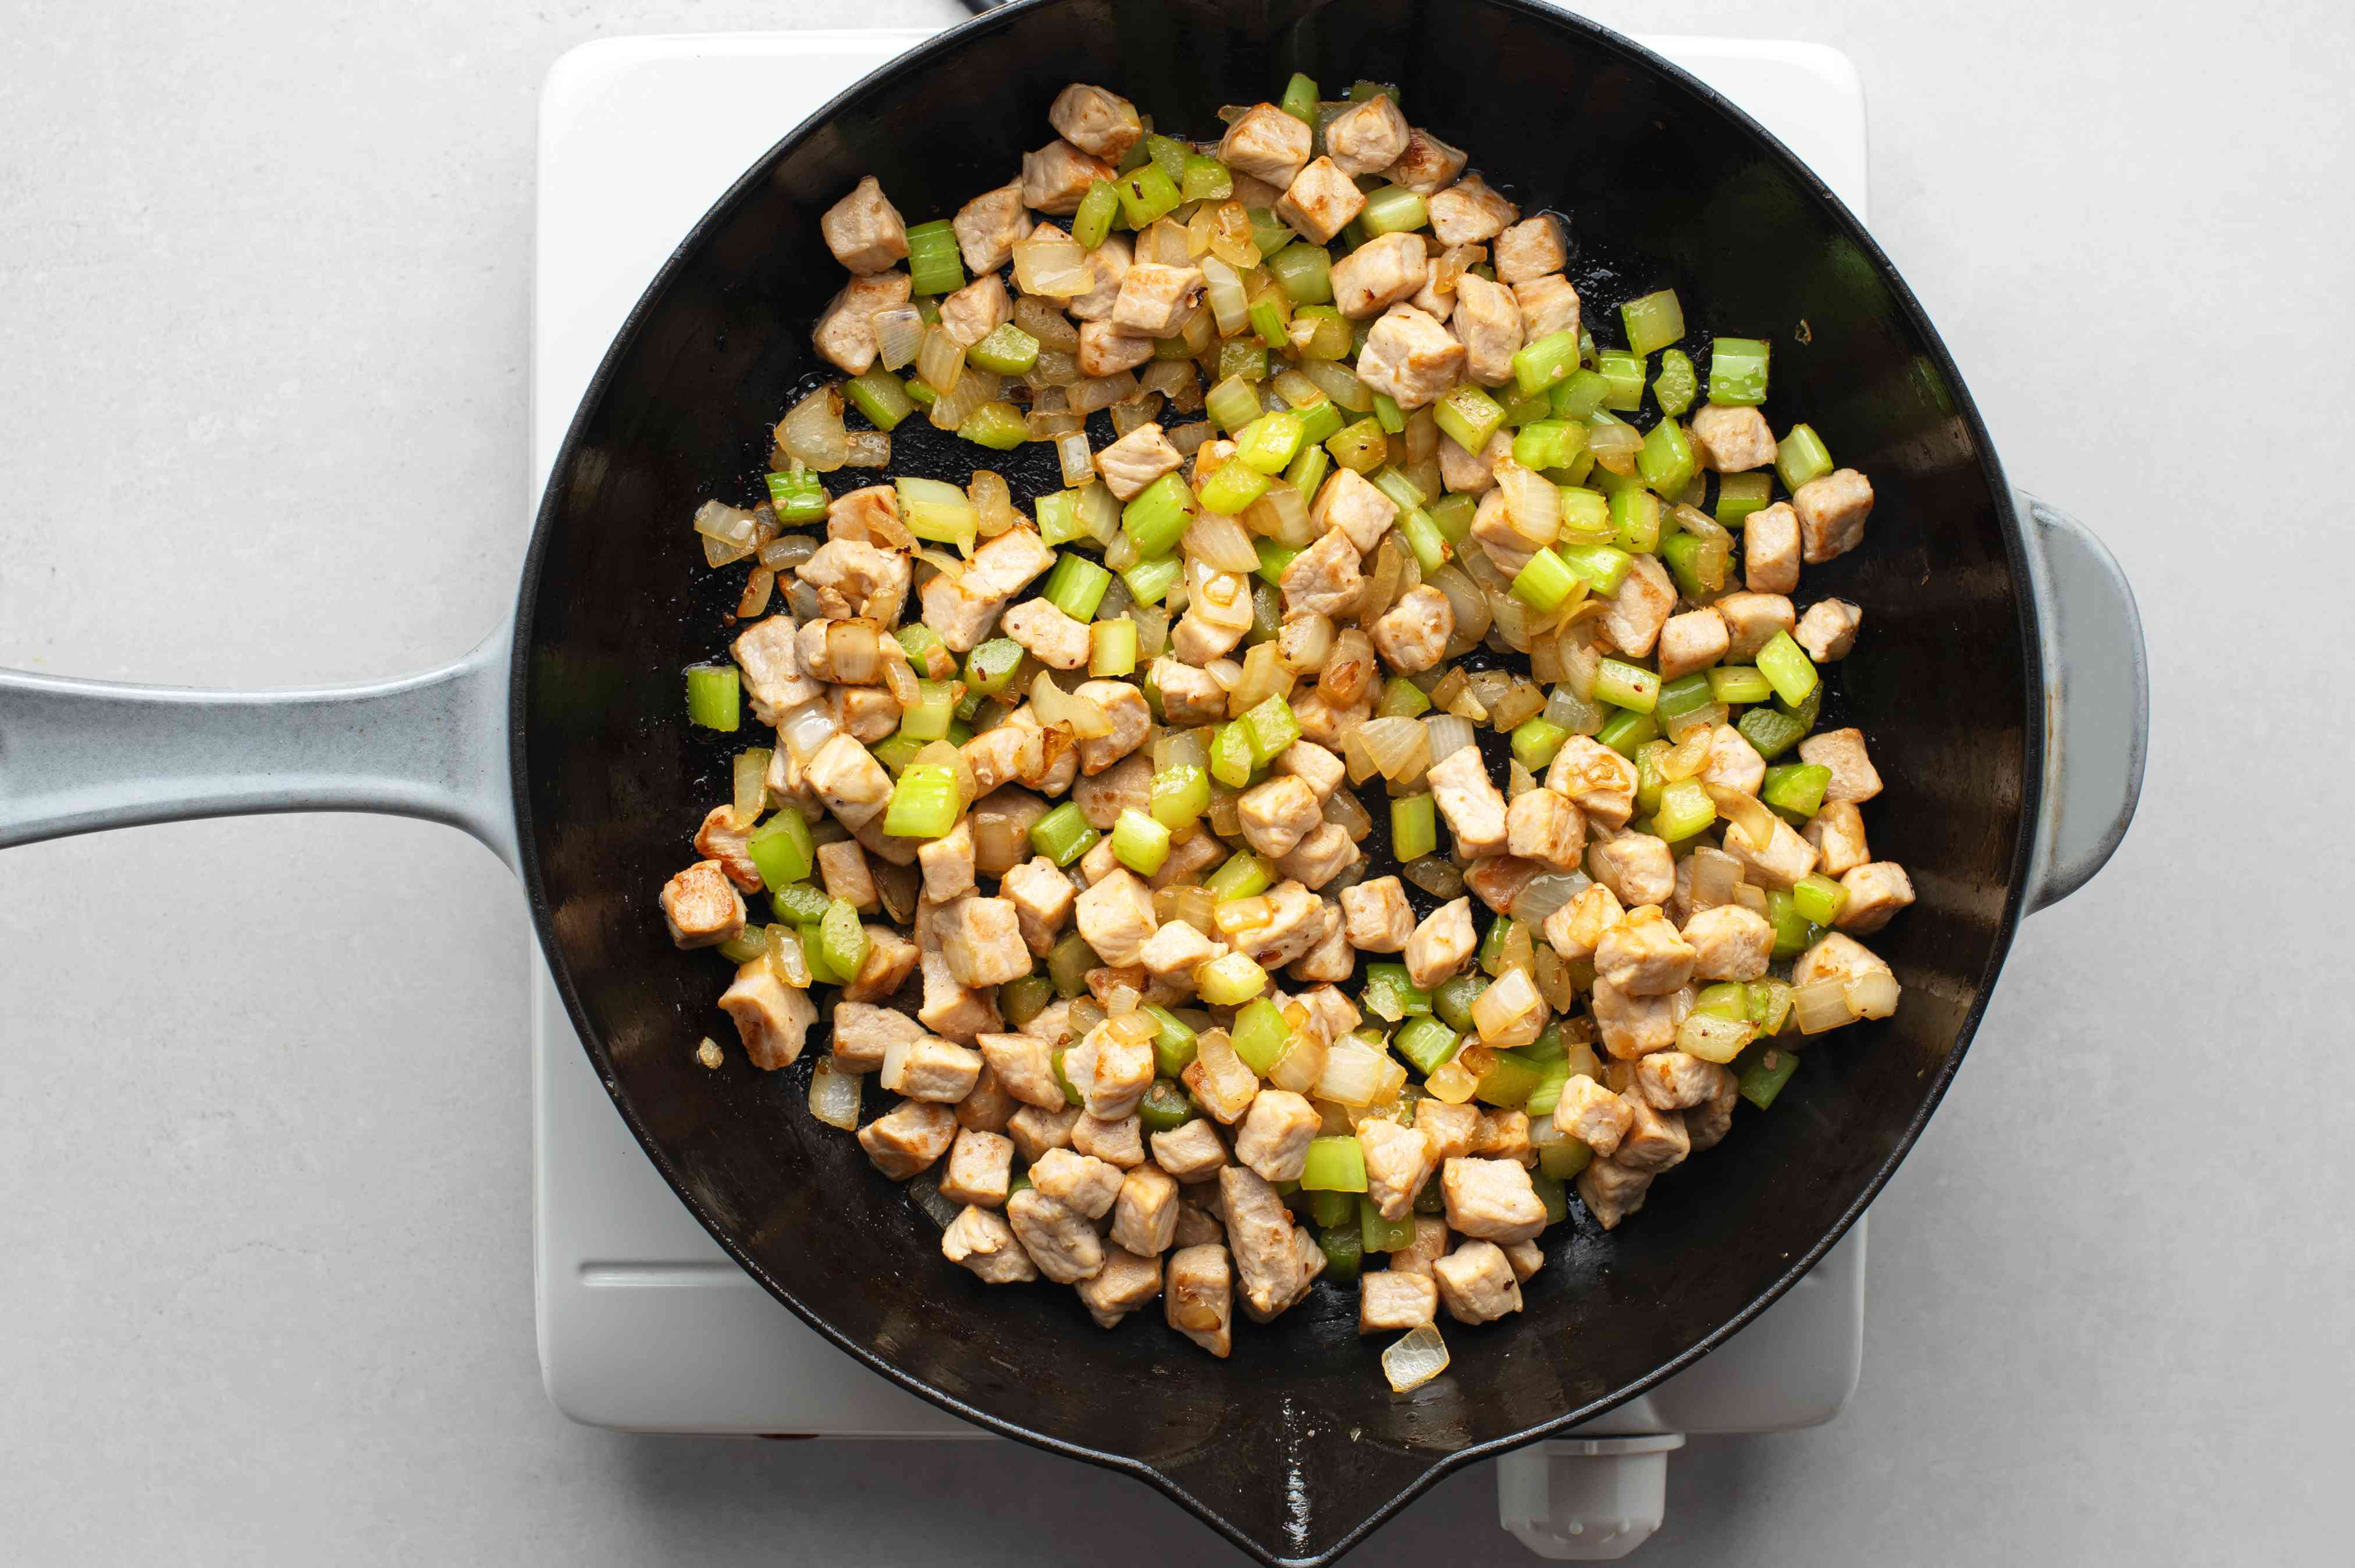 Add the chopped onion and celery to the pork in the skillet